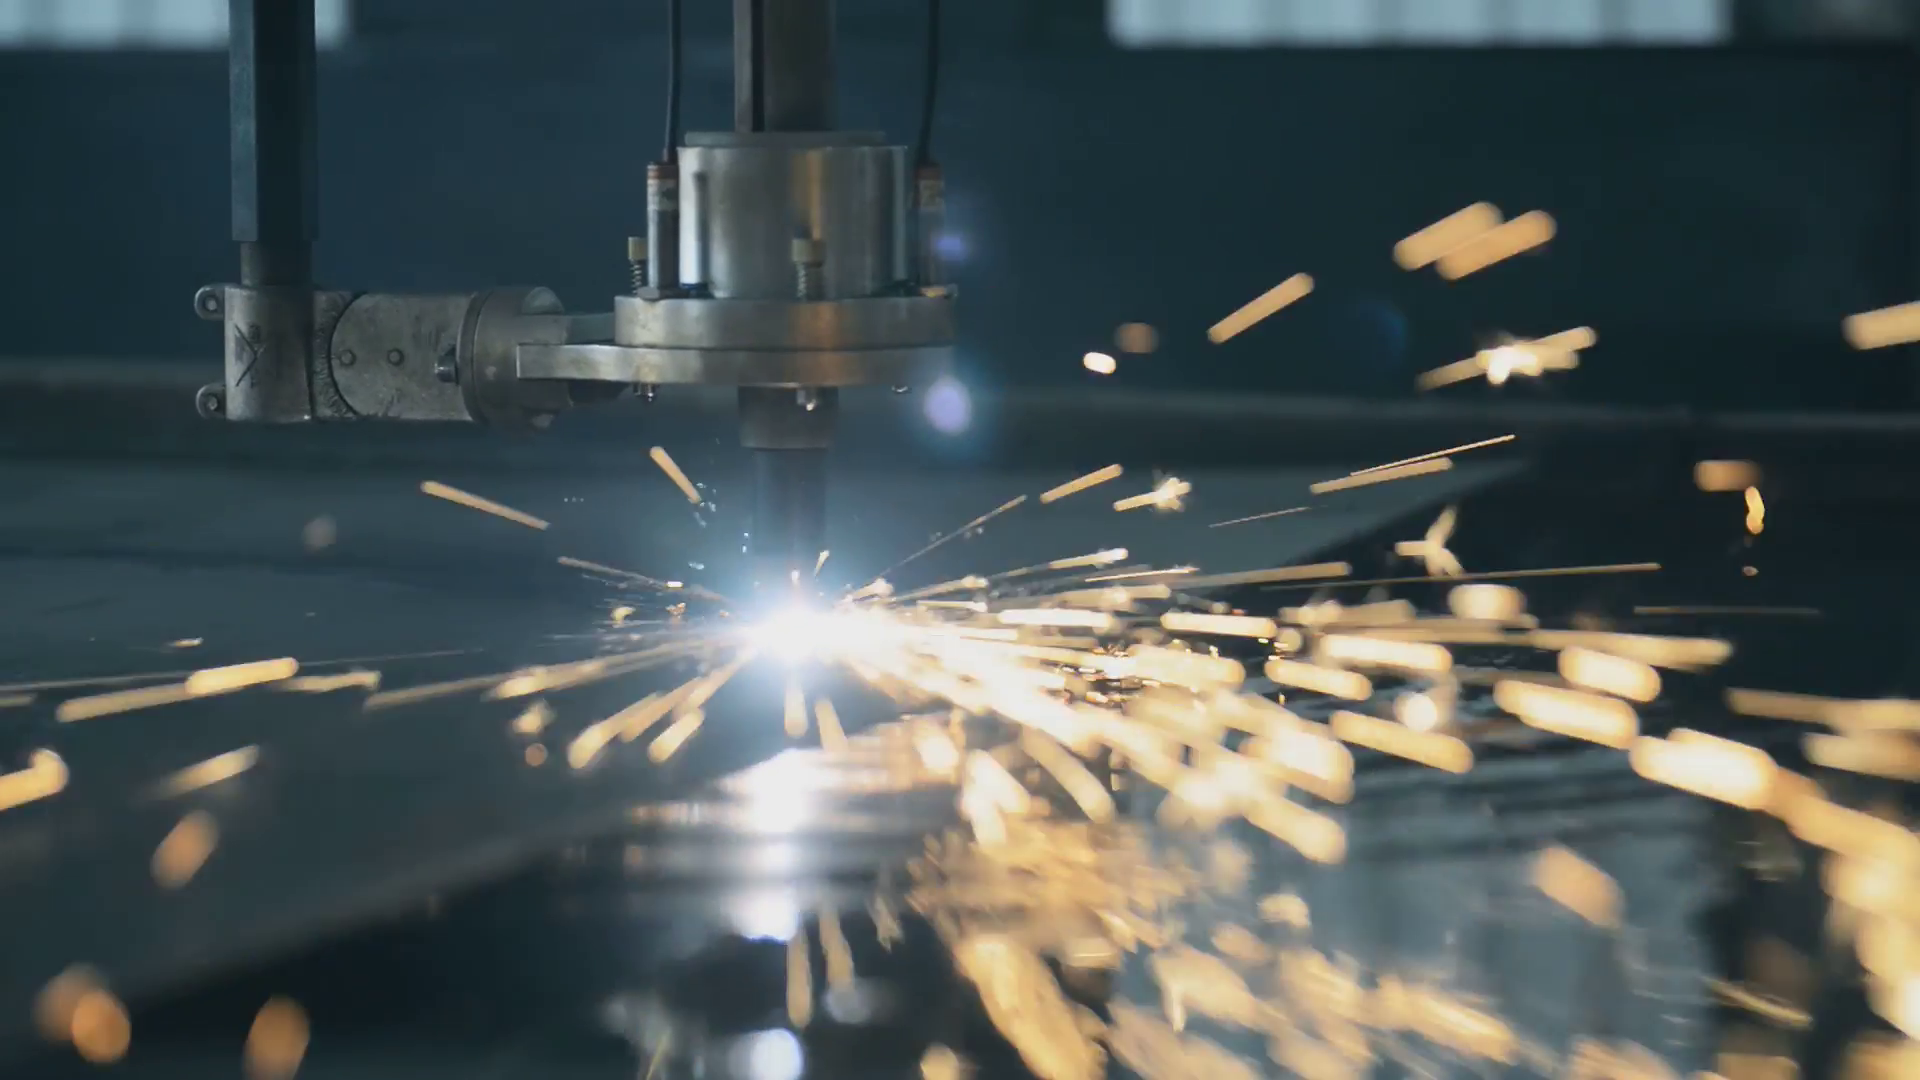 industrial-laser-cutting-processing-manufacture-technology-of-flat-sheet-metal-steel-material-with-sparks_stl0sb1__F0000